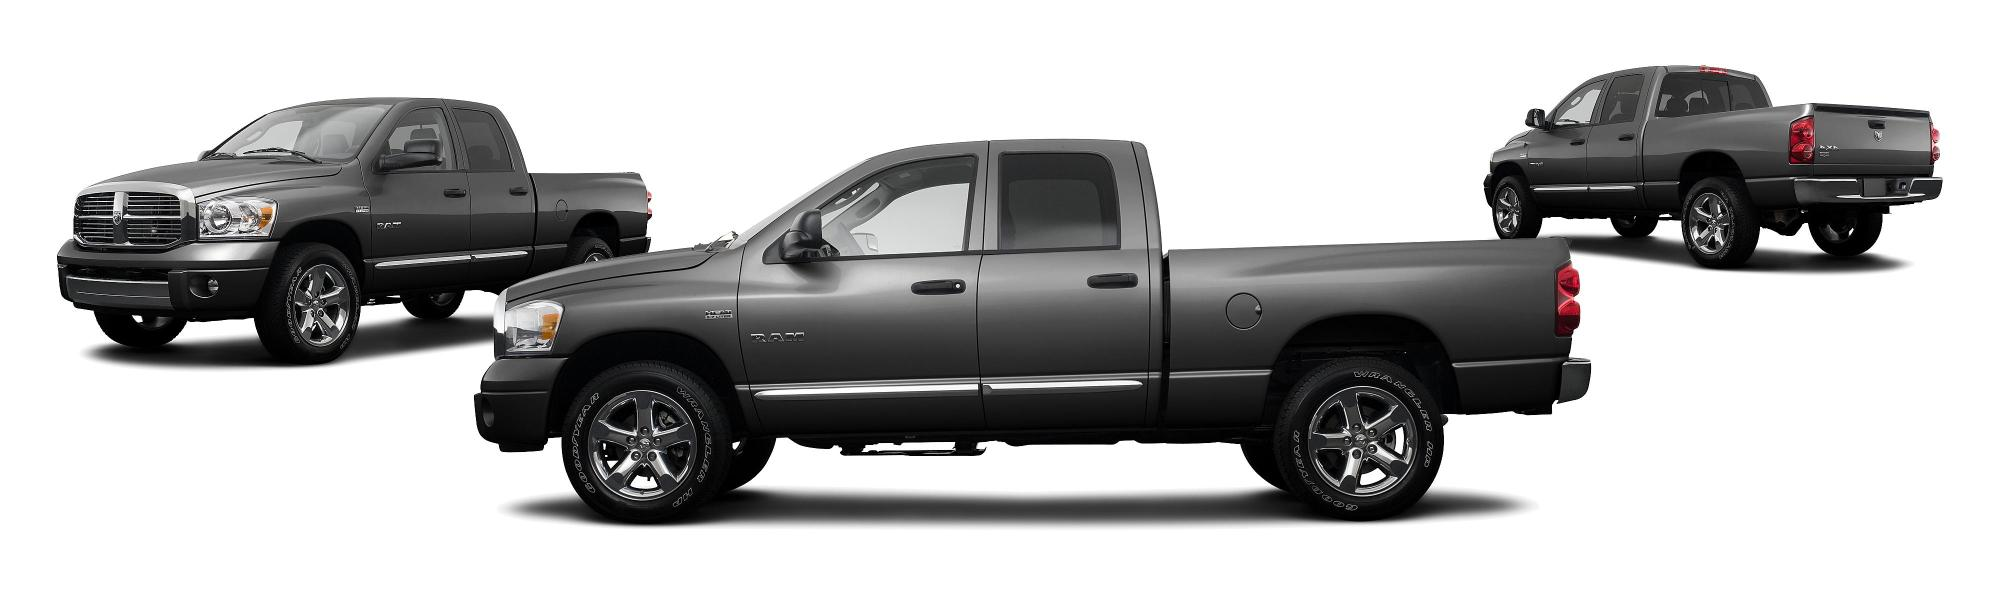 hight resolution of 2008 dodge ram pickup 1500 laramie 4dr quad cab sb research groovecar